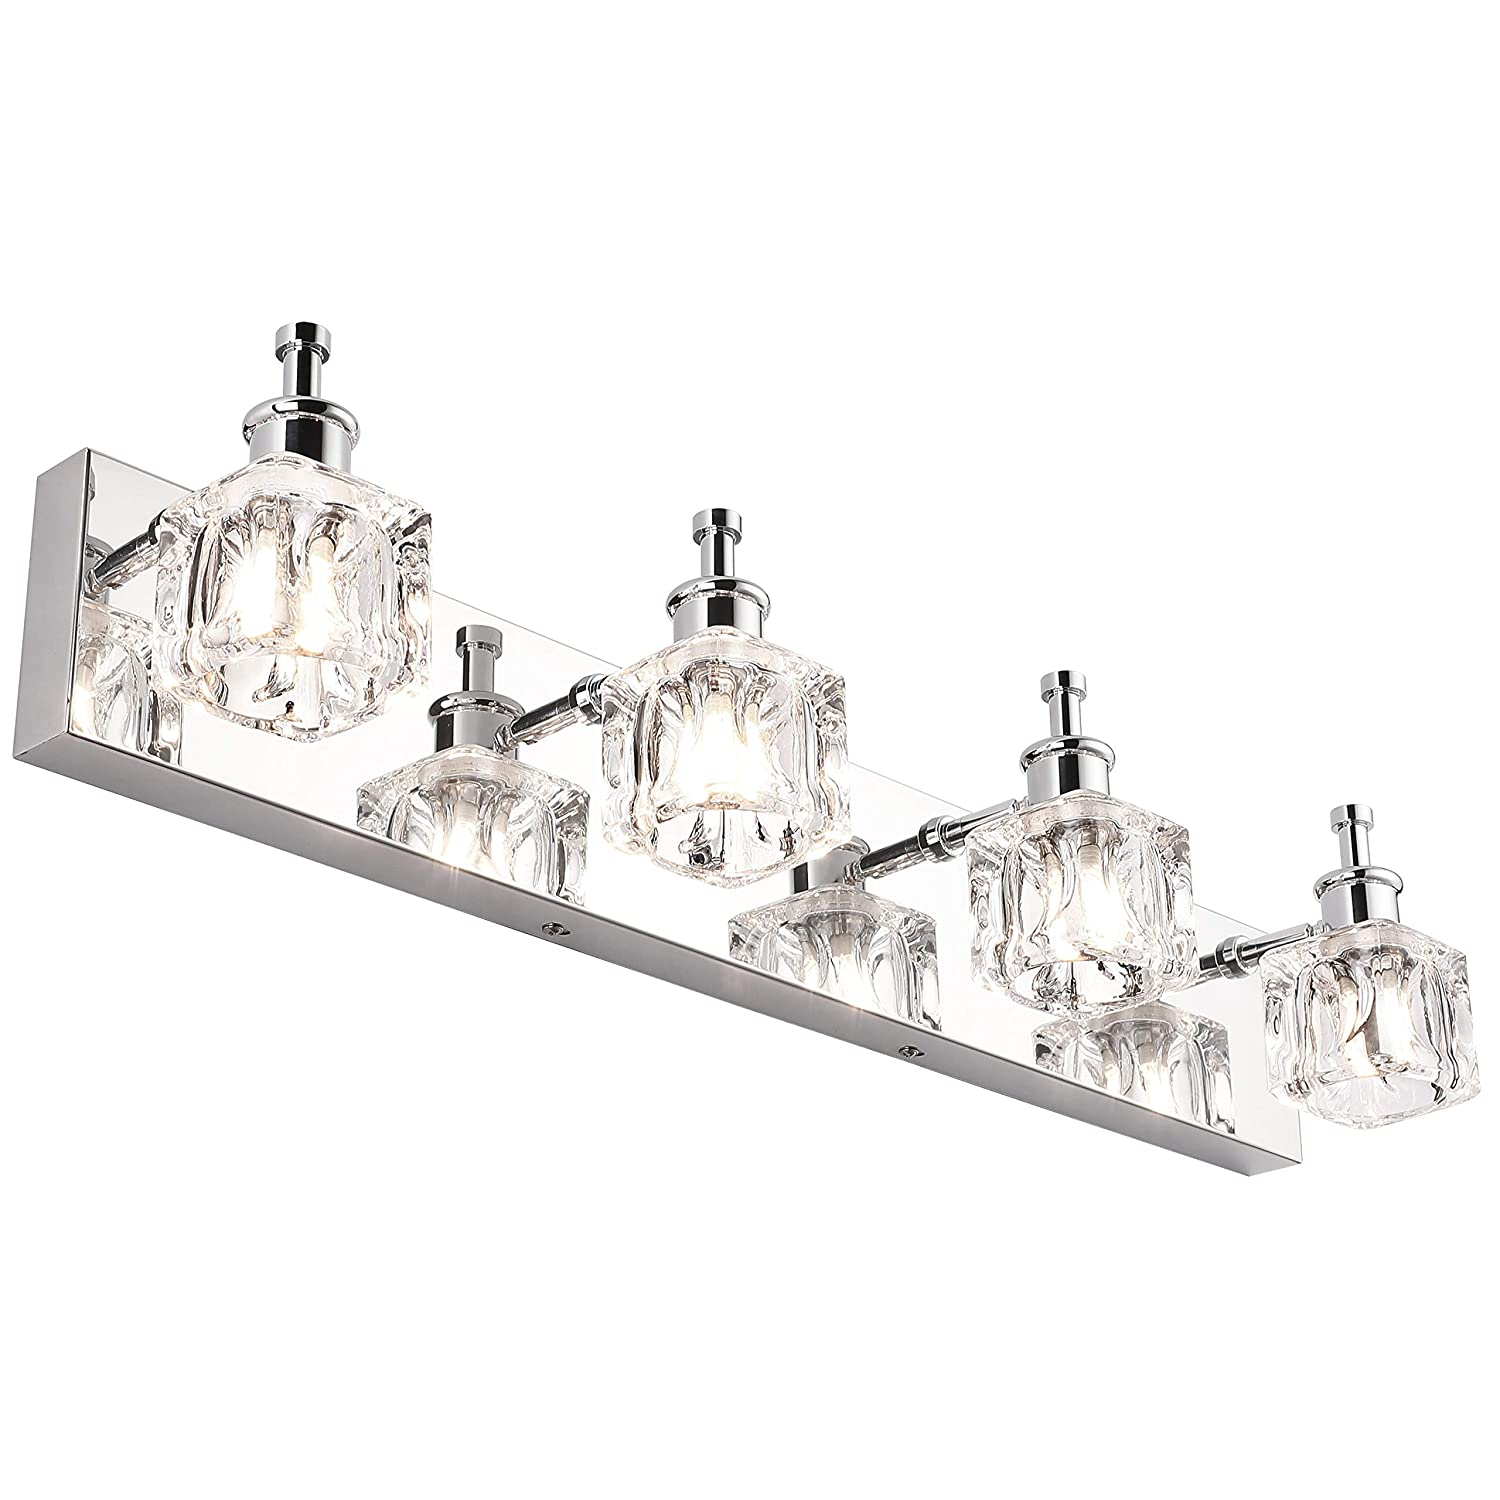 PRESDE Bathroom Light Fixtures Over Mirror LED Vanity Light 4 Lights Strip Wall Lighting Decor